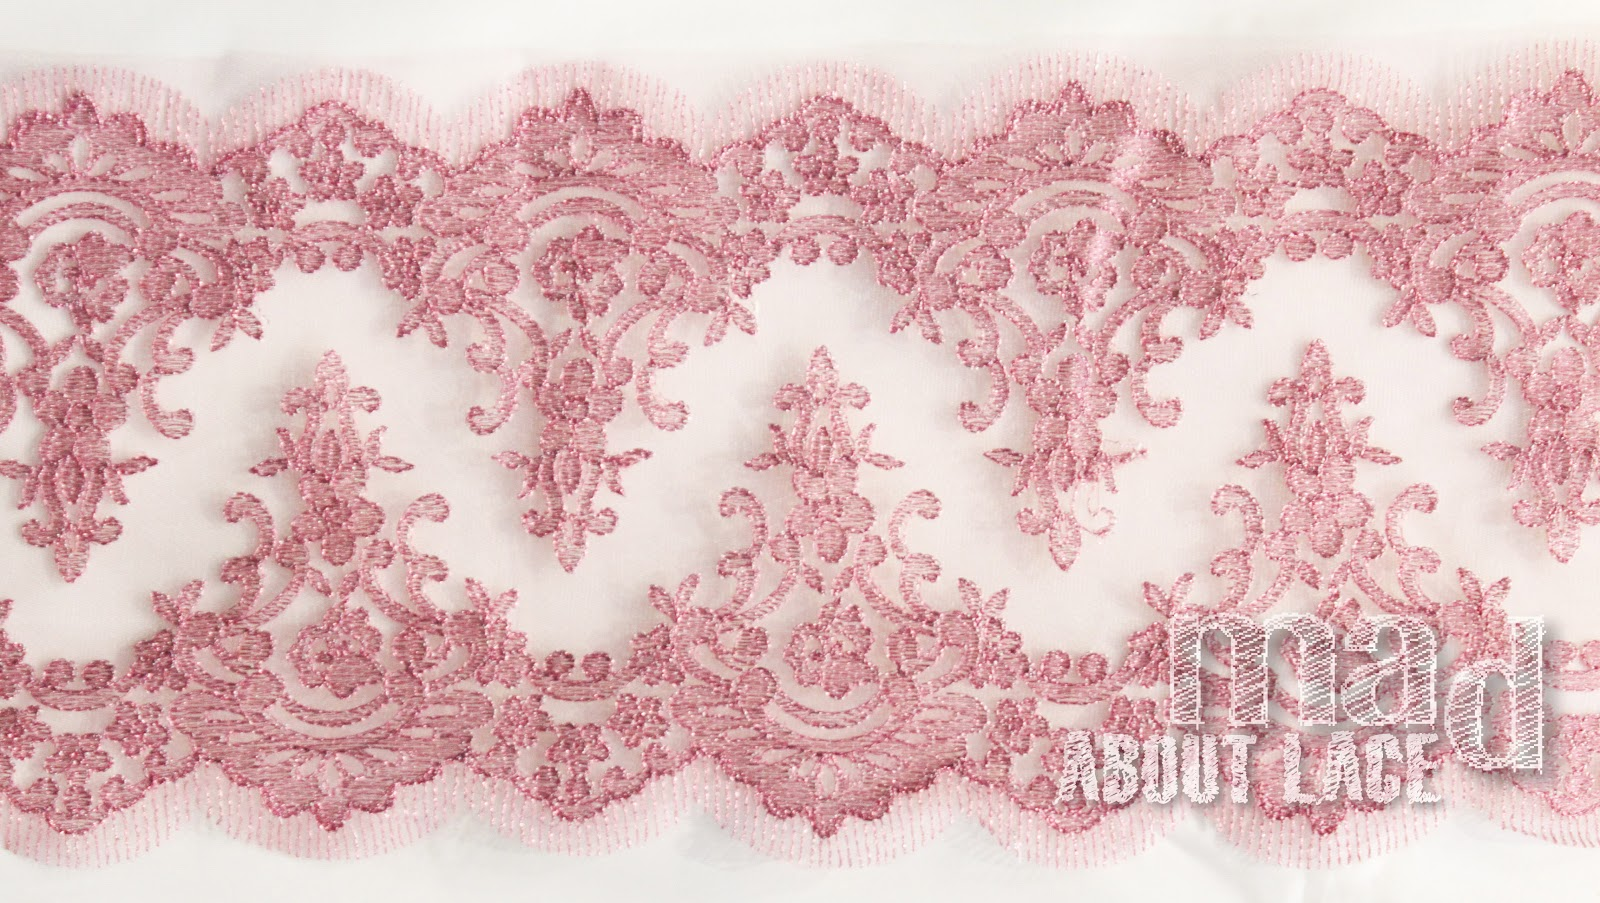 Mad About Lace: Dusty Pink: madaboutlace.blogspot.com/p/dusty-pink.html